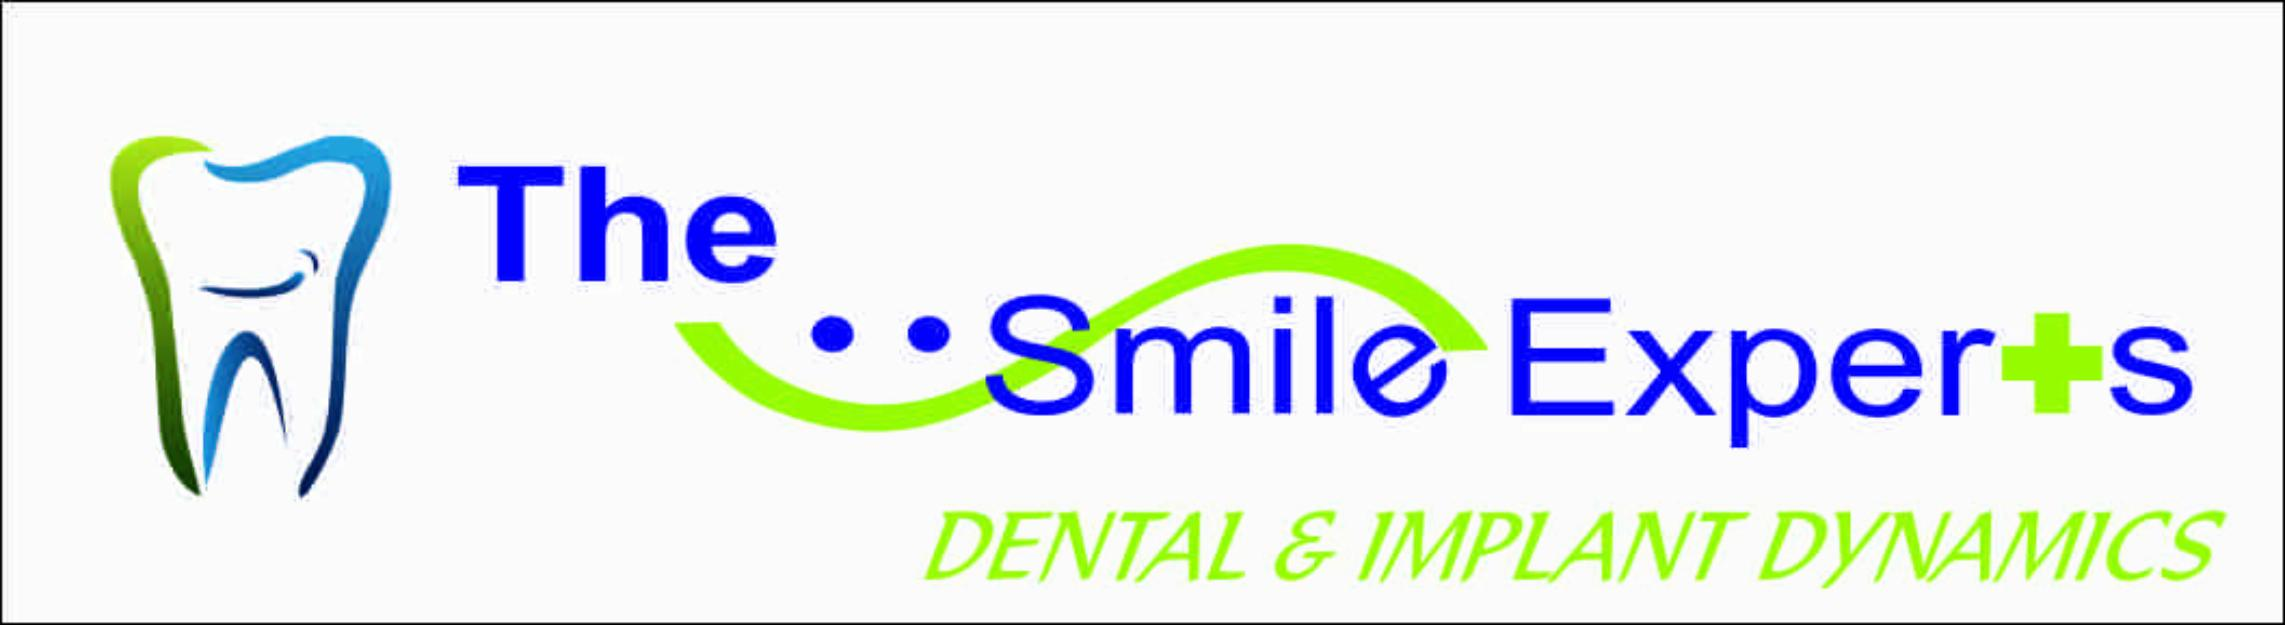 The Smile Experts Dental and Implant Dynamics